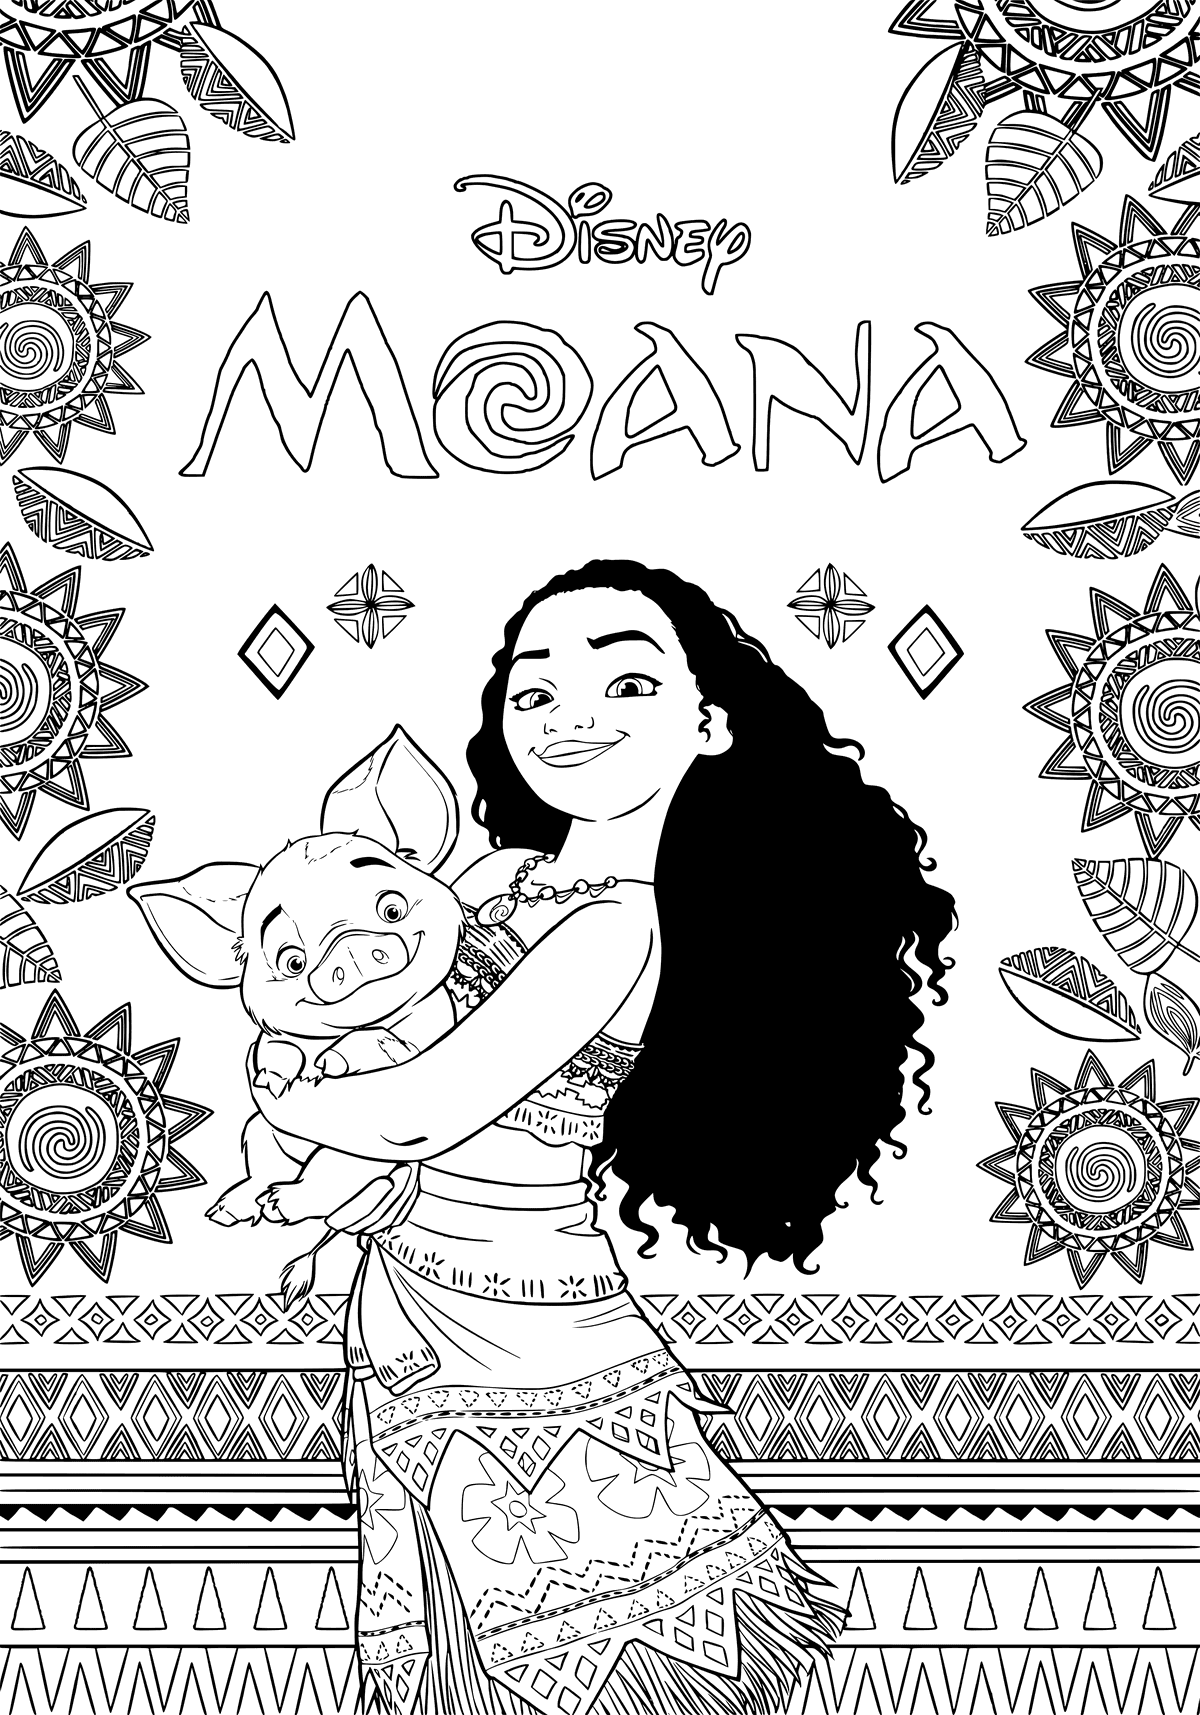 Moana Disney S New Instant Classic Is Getting Lots Of Play And There S Good Reason Why Huge Adven Moana Coloring Pages Moana Coloring Disney Coloring Pages